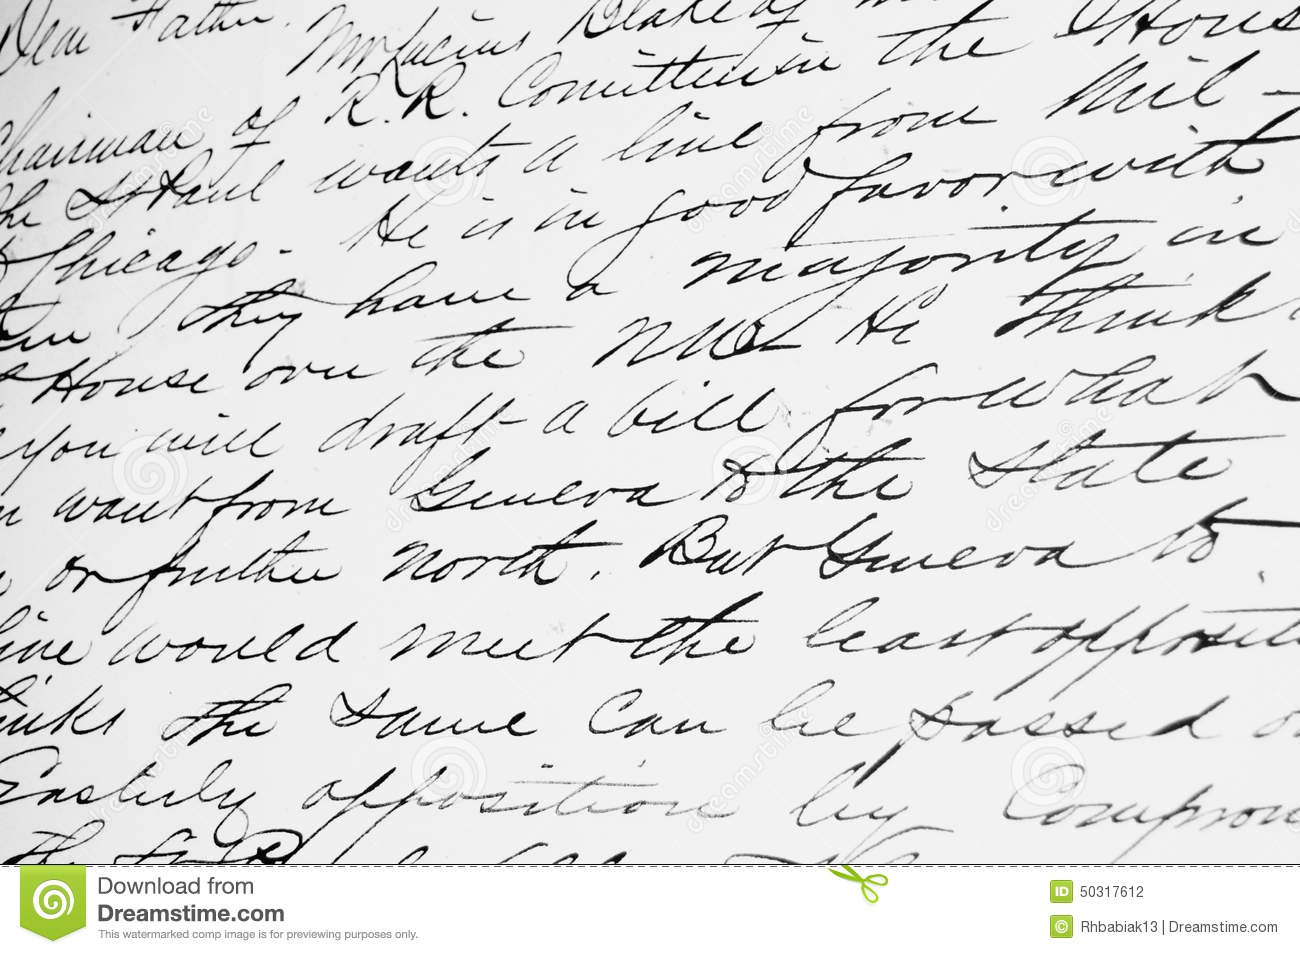 1,540 Old Fashioned Handwriting Photos - Free & Royalty-Free